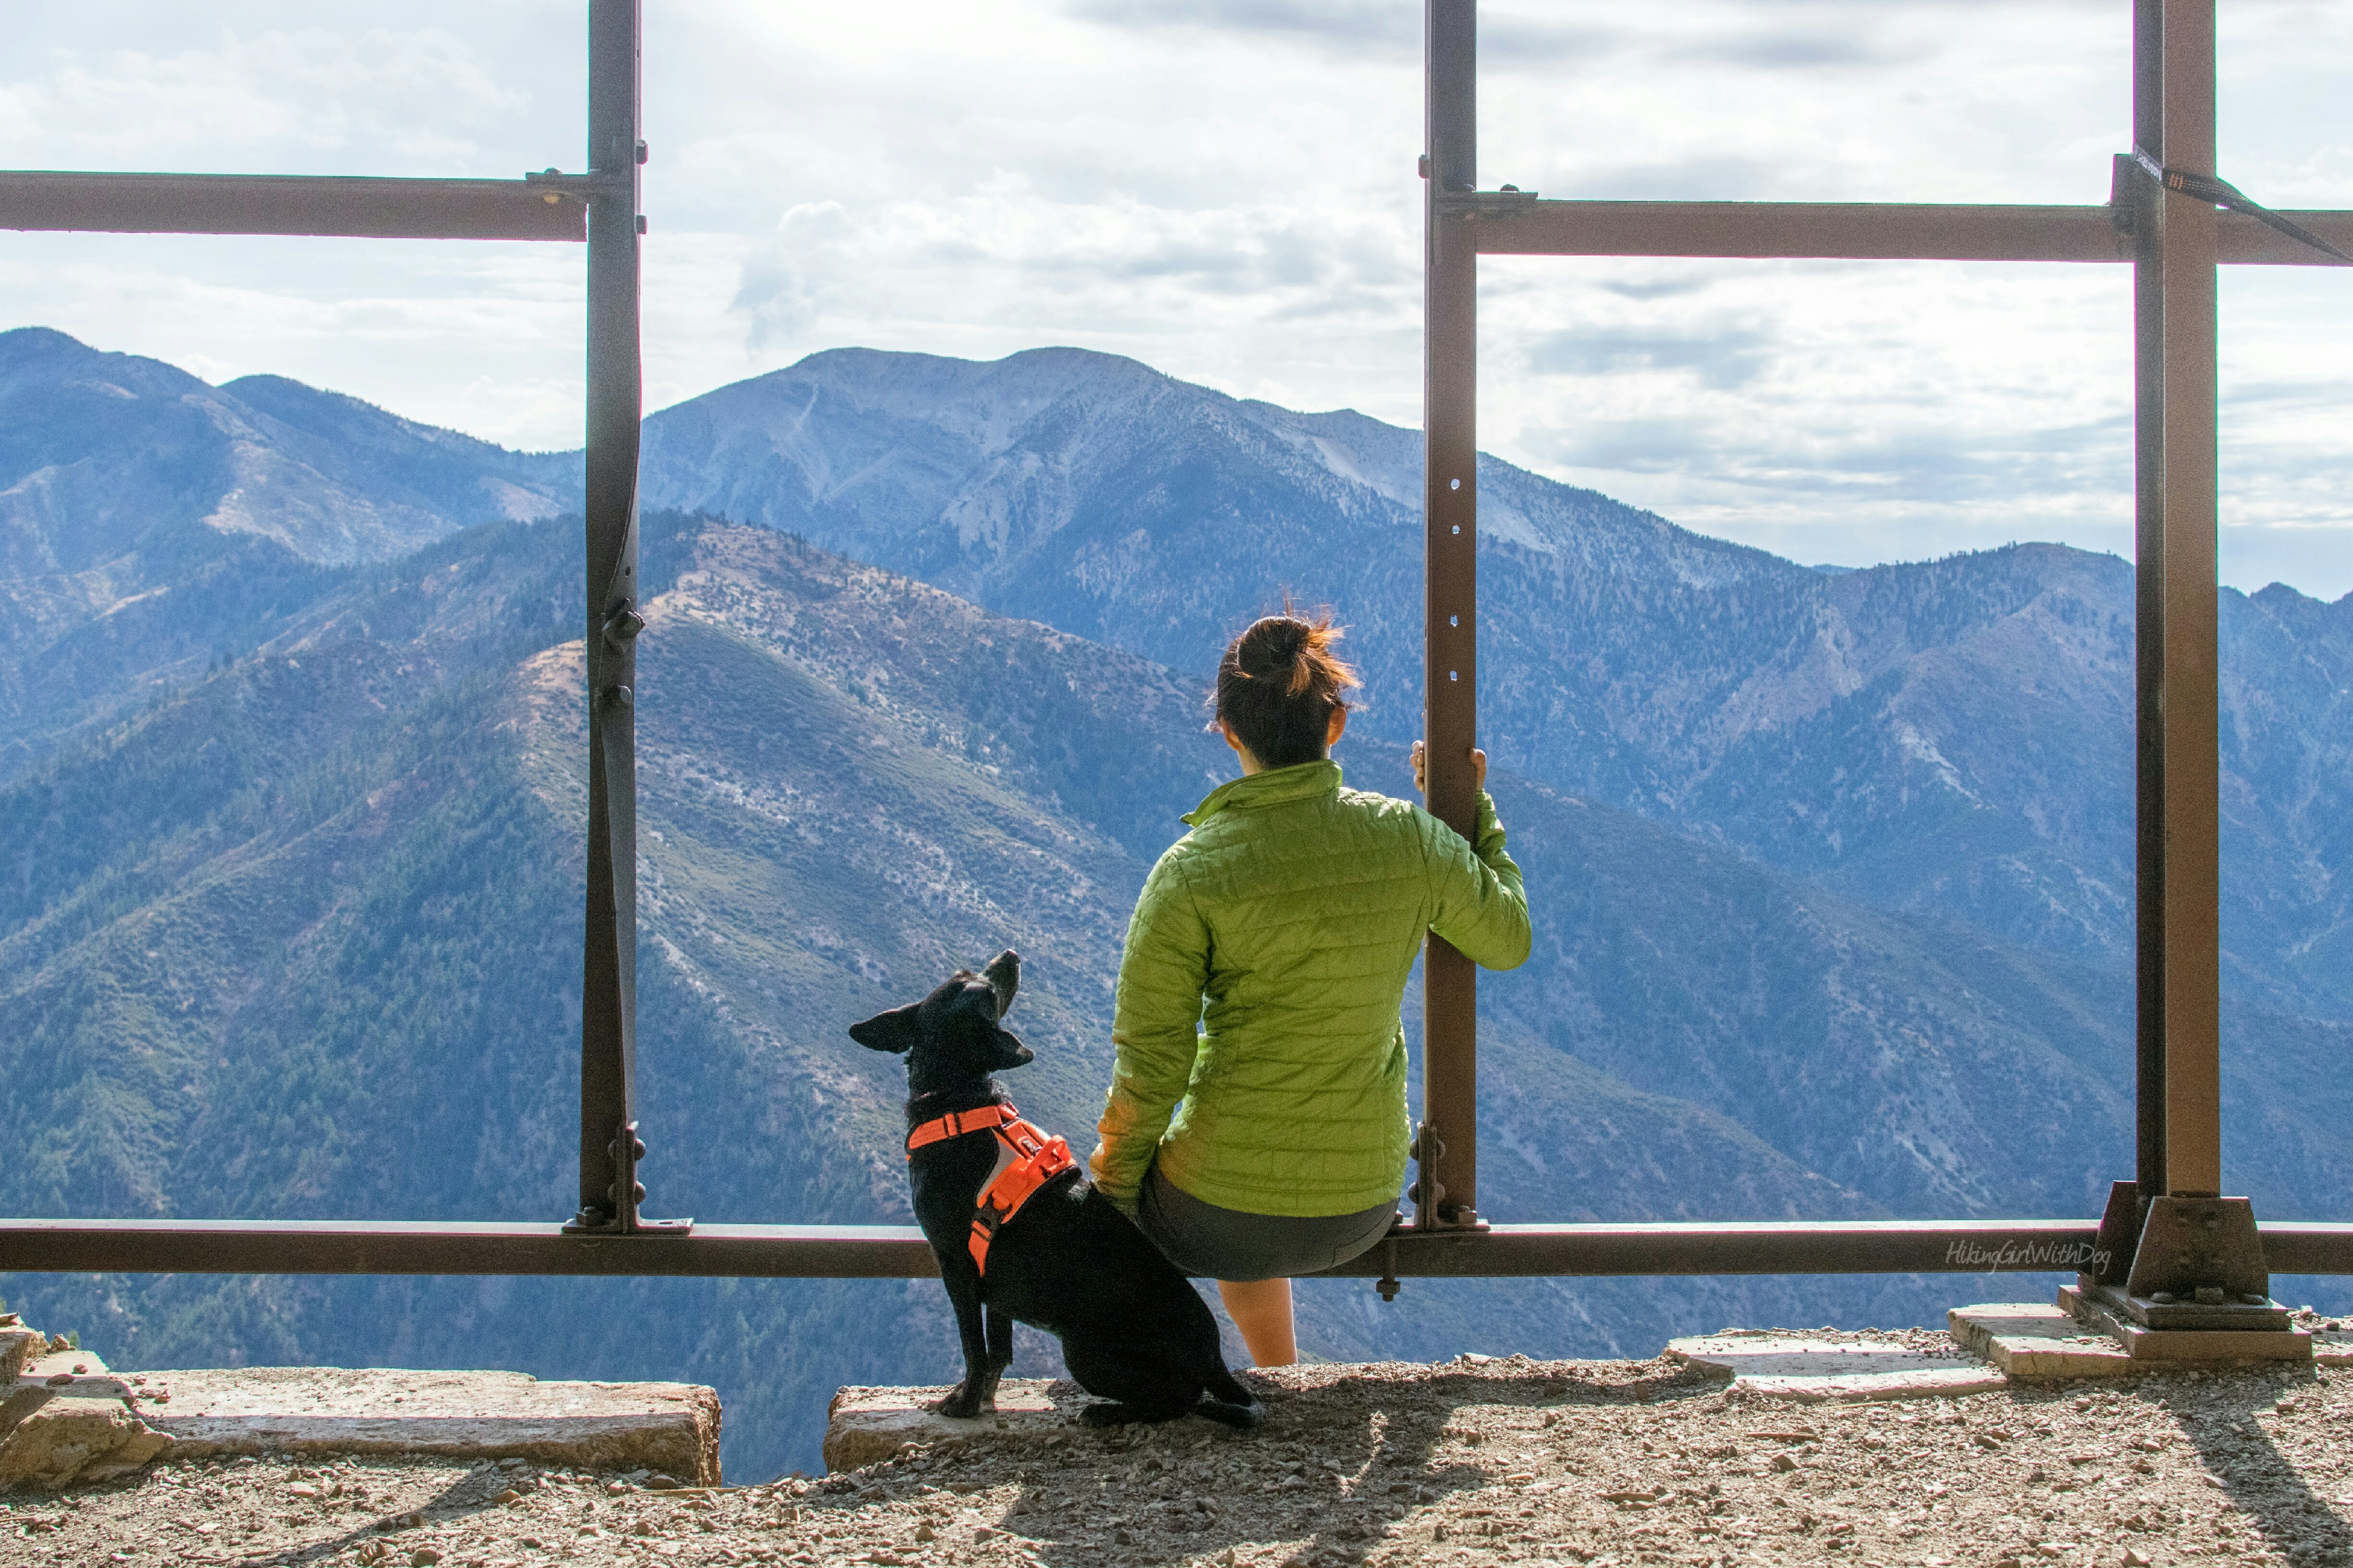 Best dog-friendly hikes in Southern California